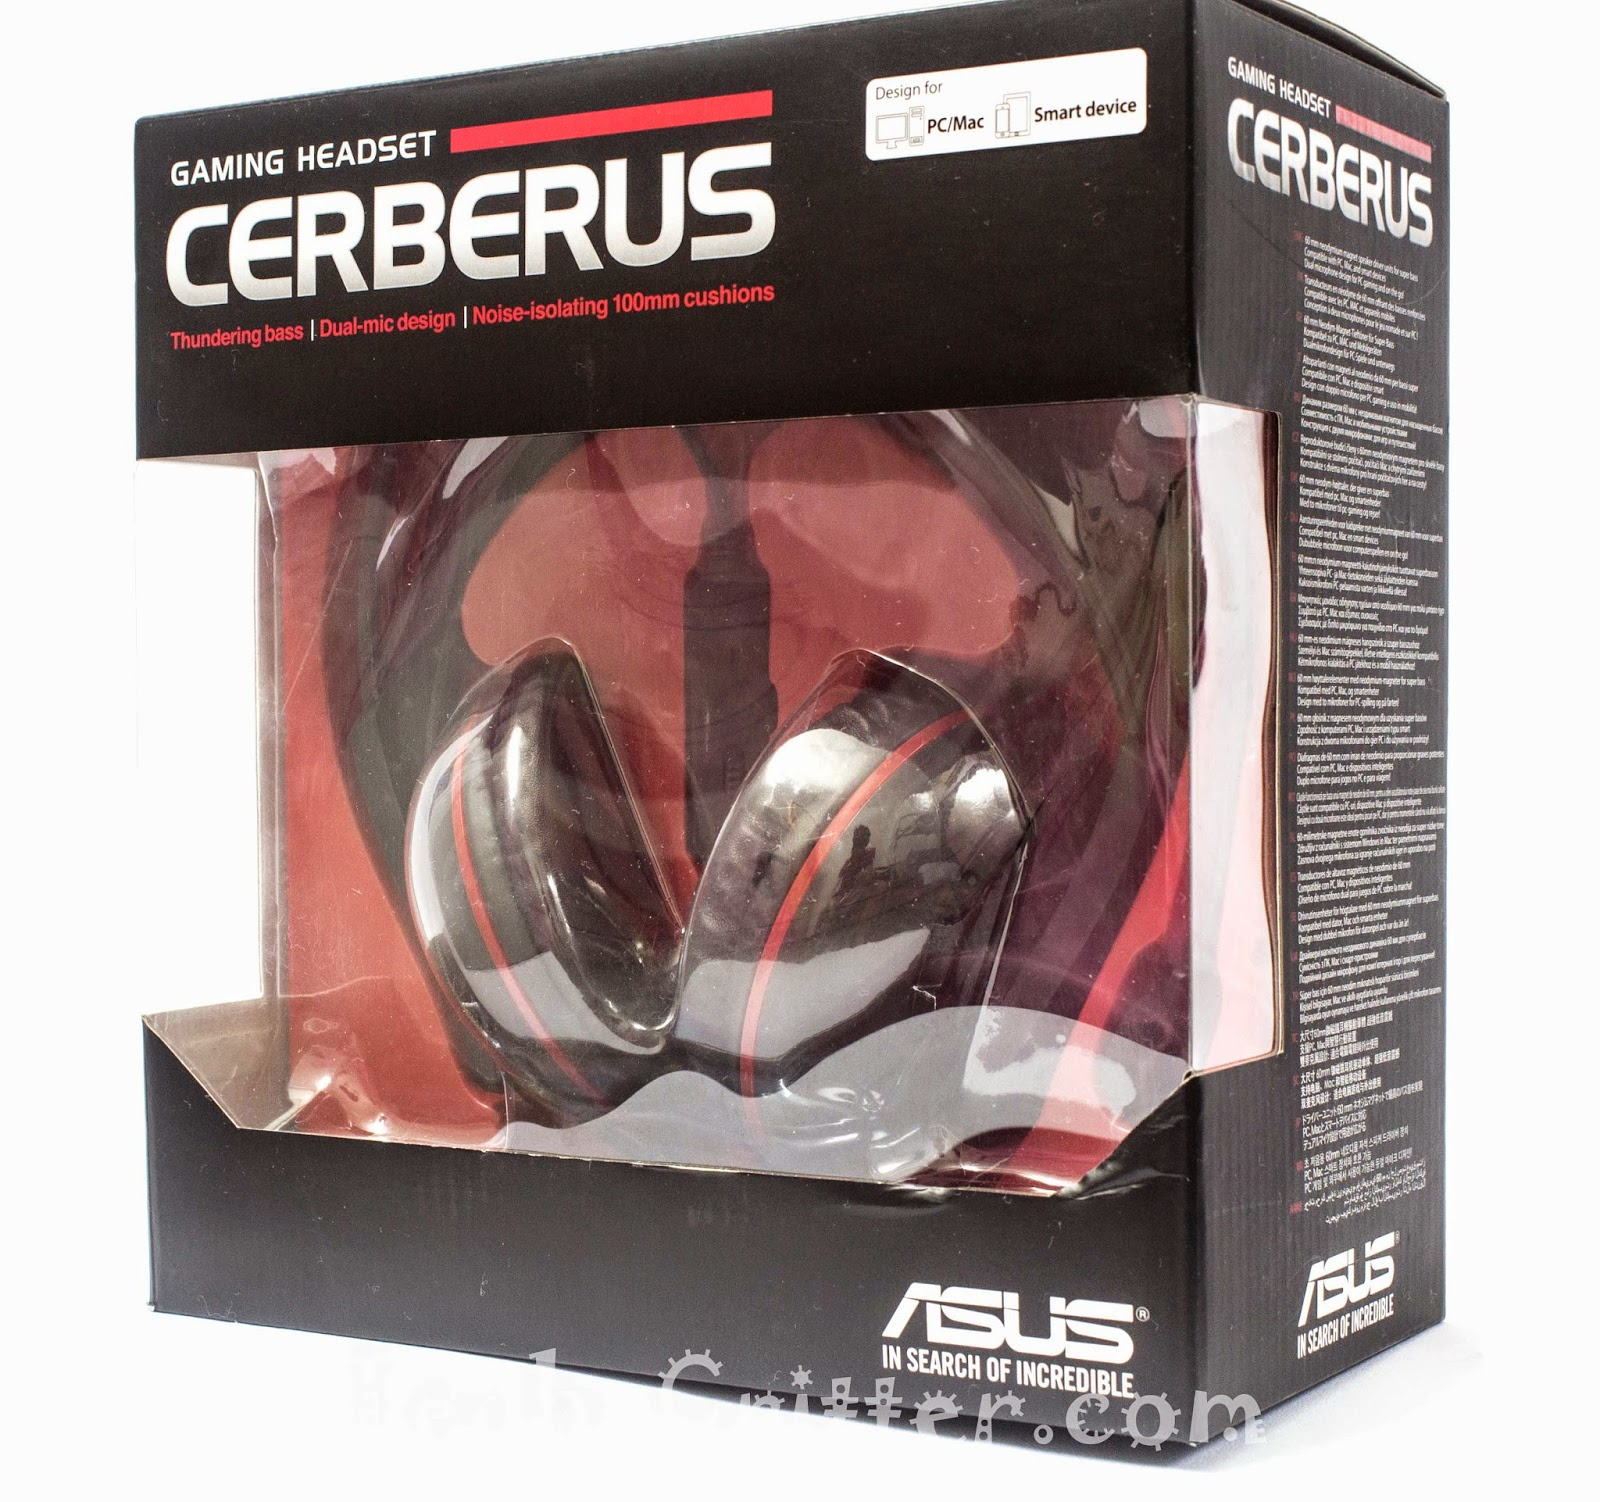 Unboxing & Review: ASUS Cerberus Gaming Headset 3